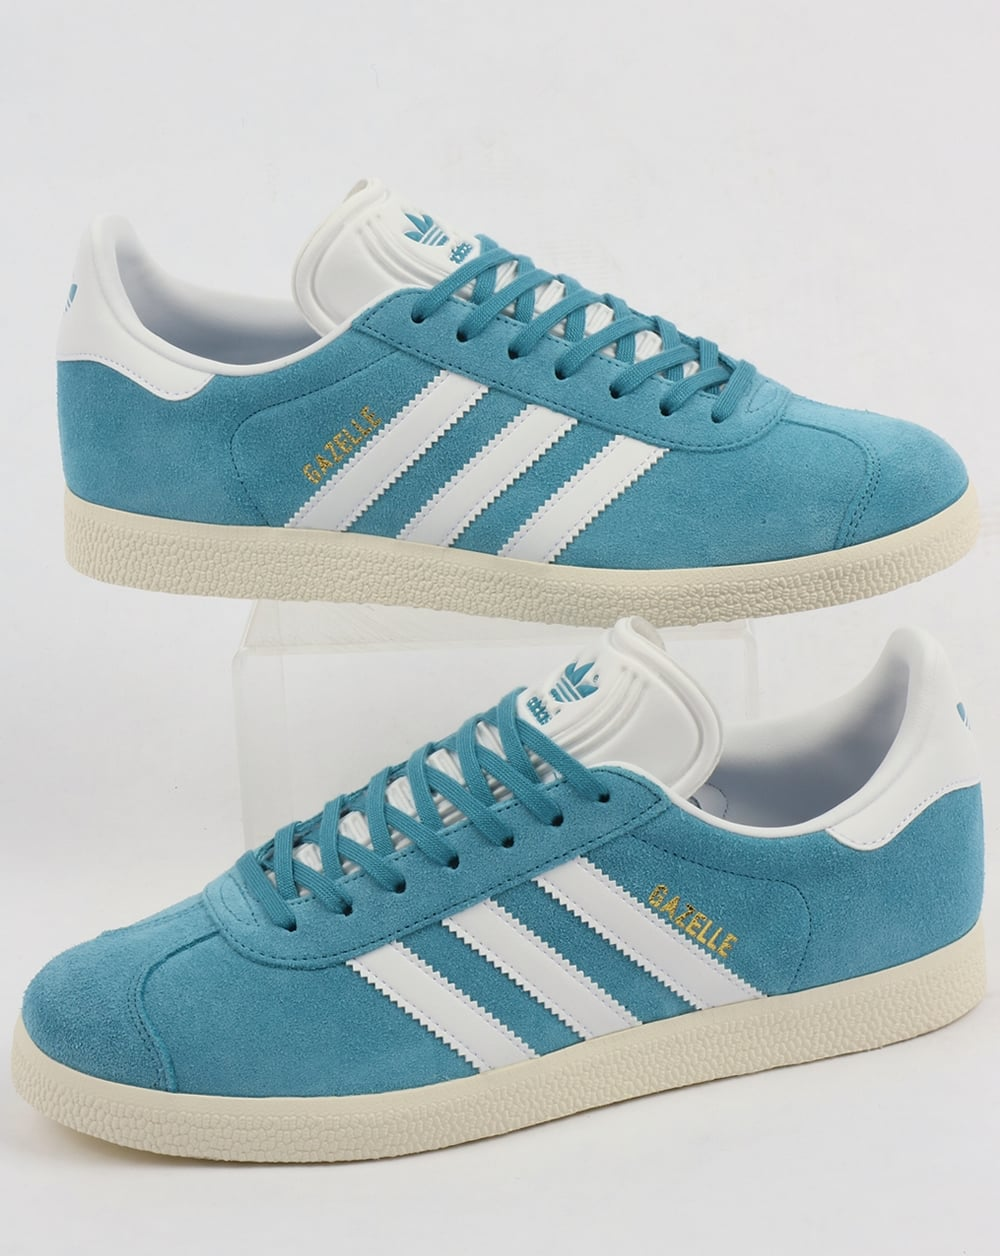 Blue Adidas Shoes Skate